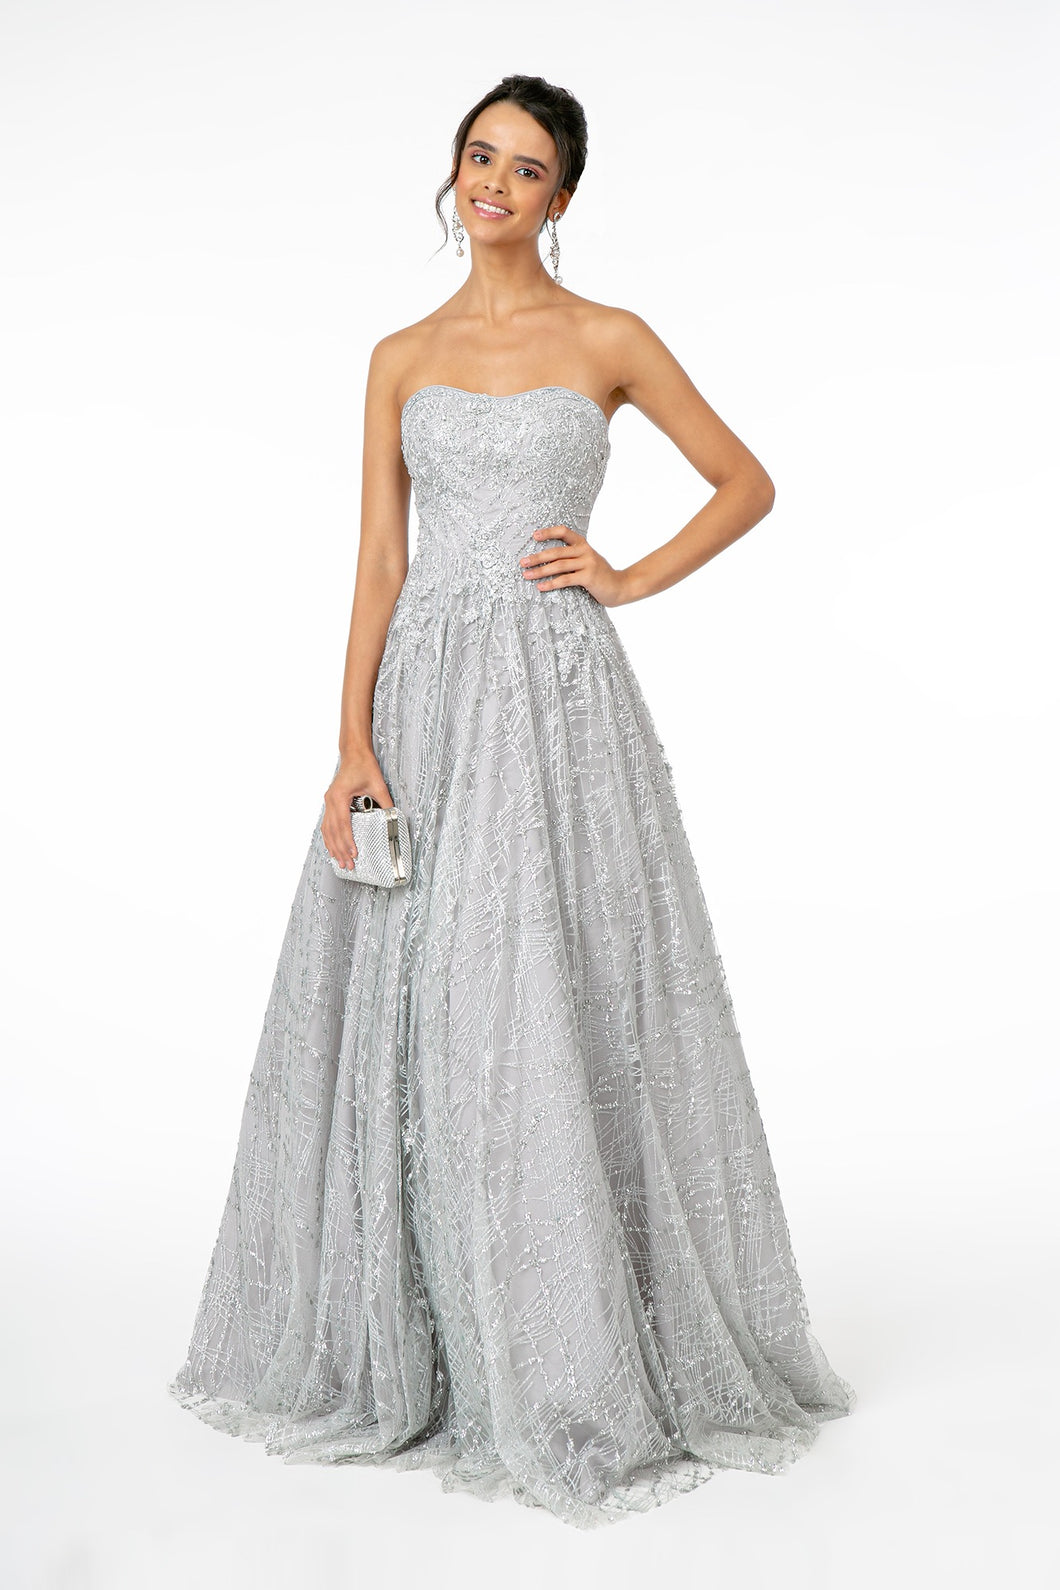 GLS GL 2921 - Glitter Strapless A-Line Ballgown with Bead & Embellished Bodice - Diggz Prom